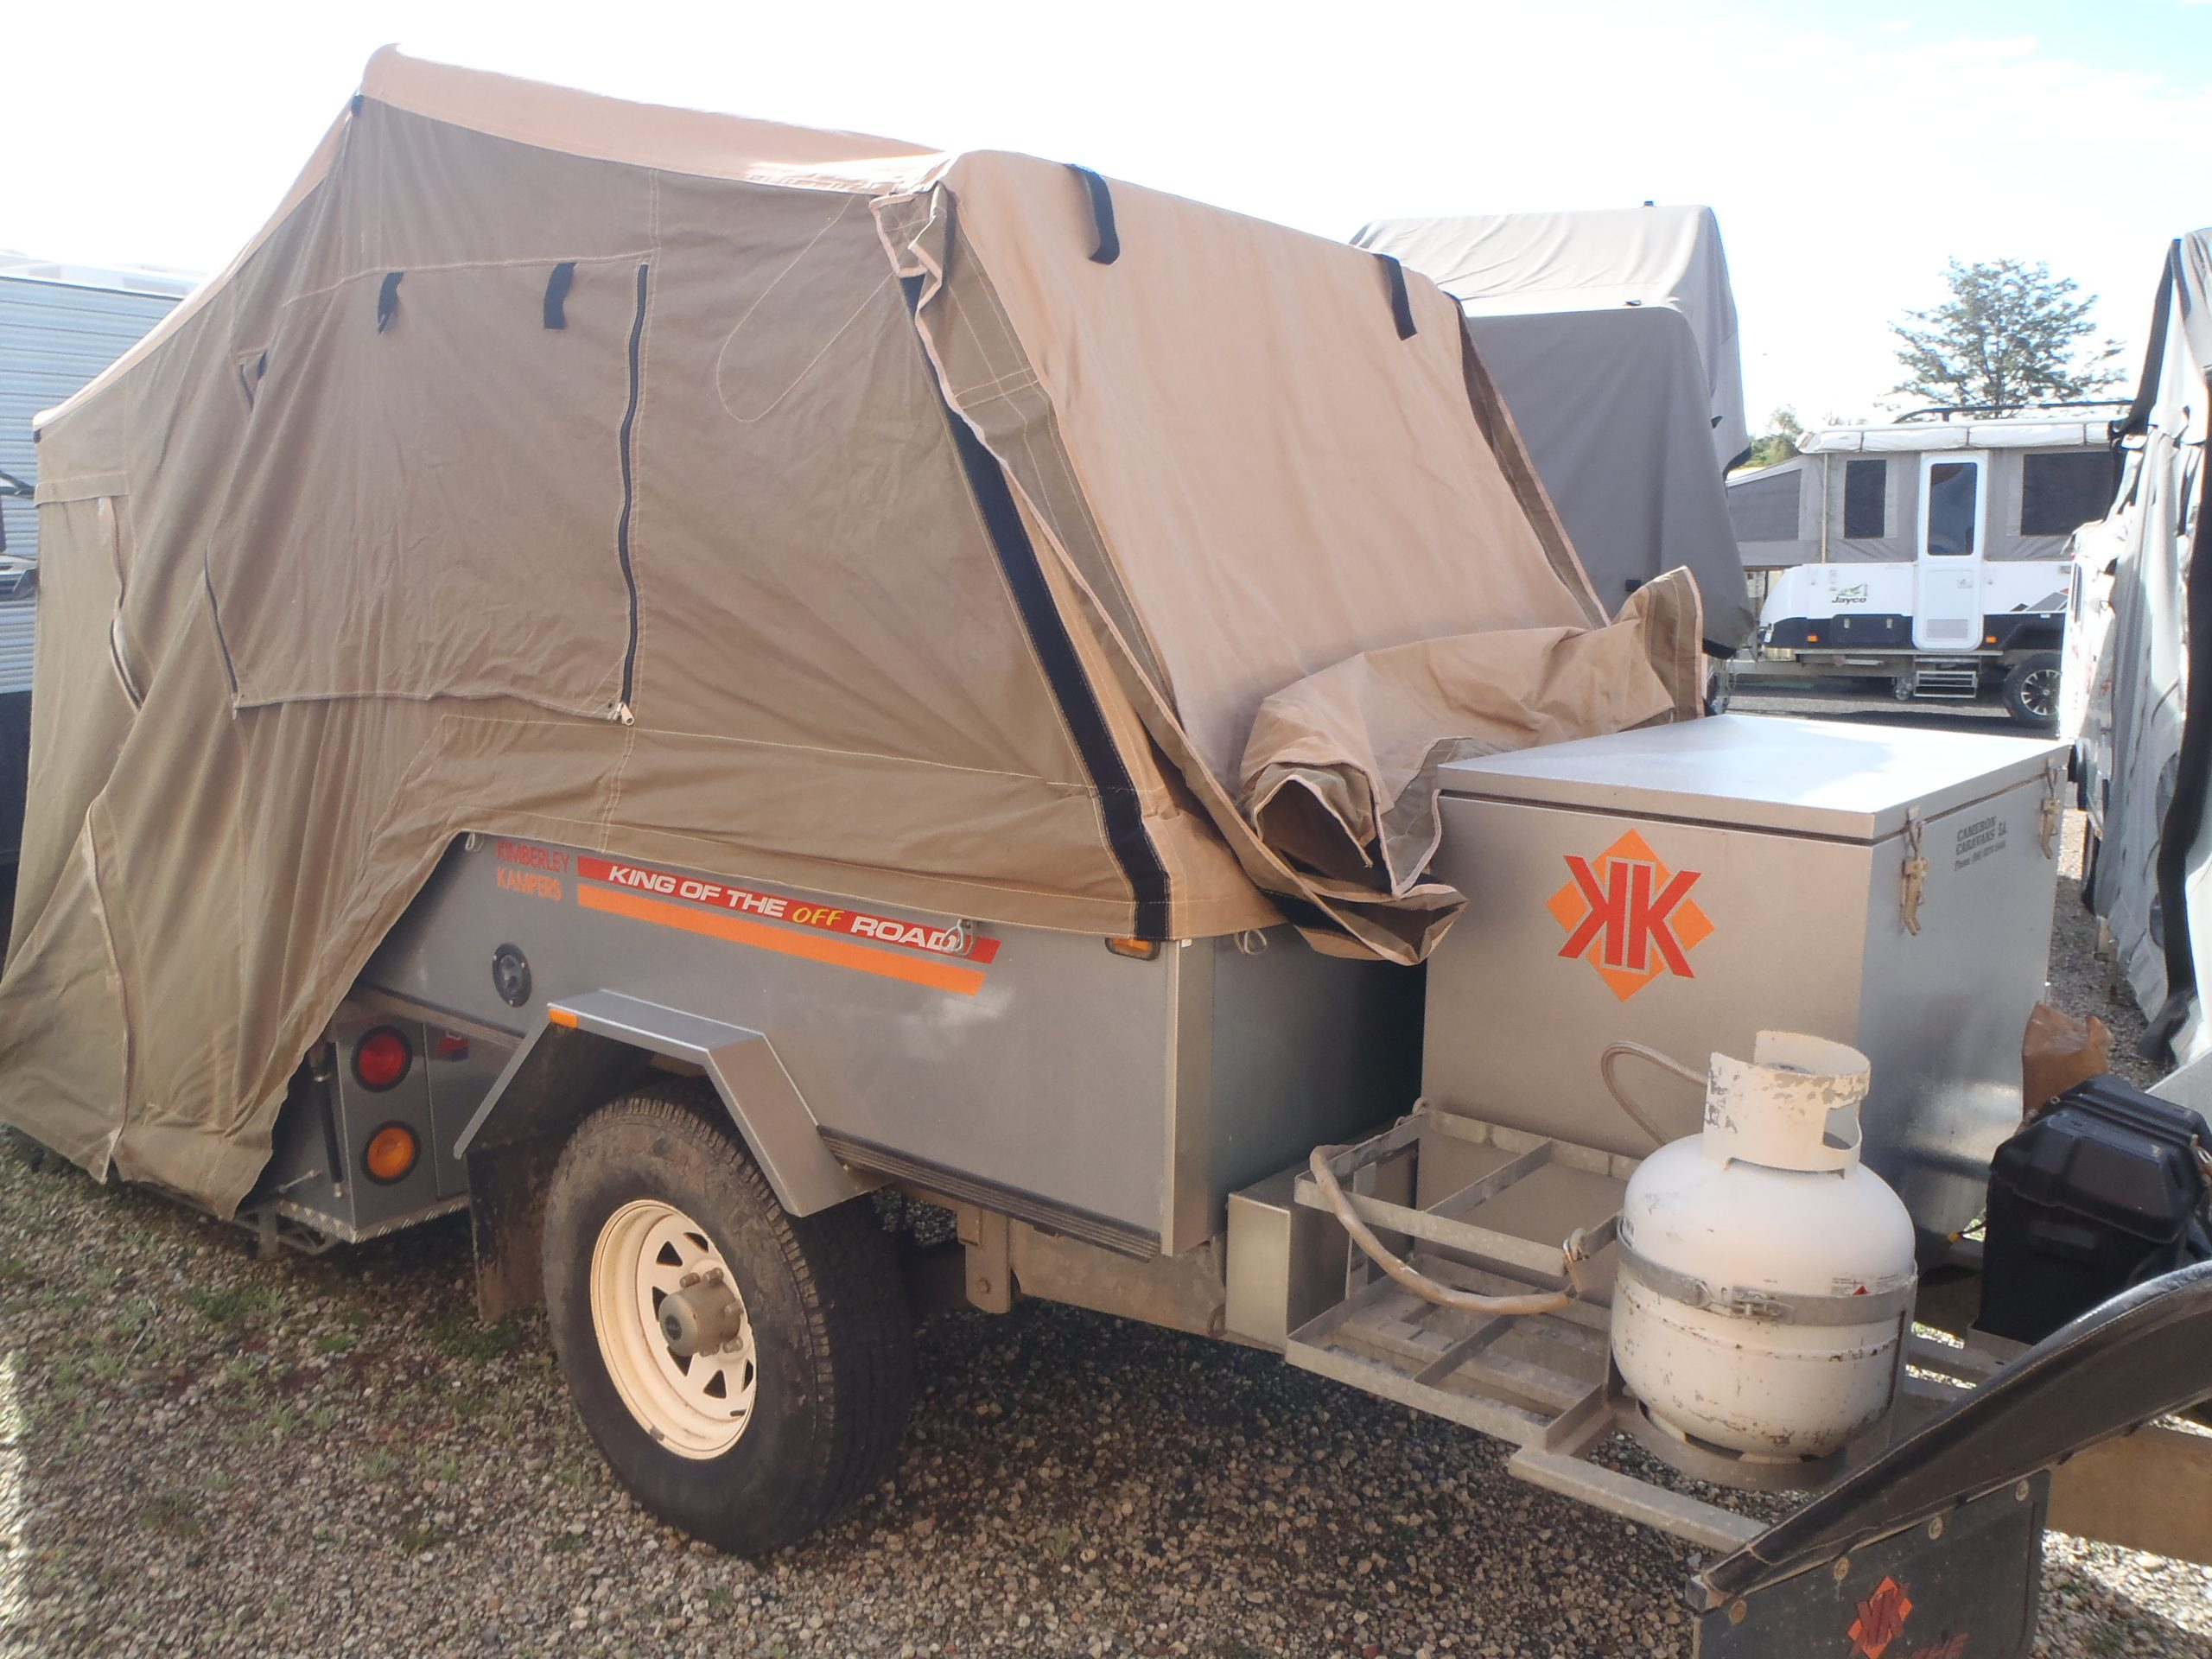 2003 Kimberly Kamper Kakadu for sale in Windsor, NSW. SN 3029